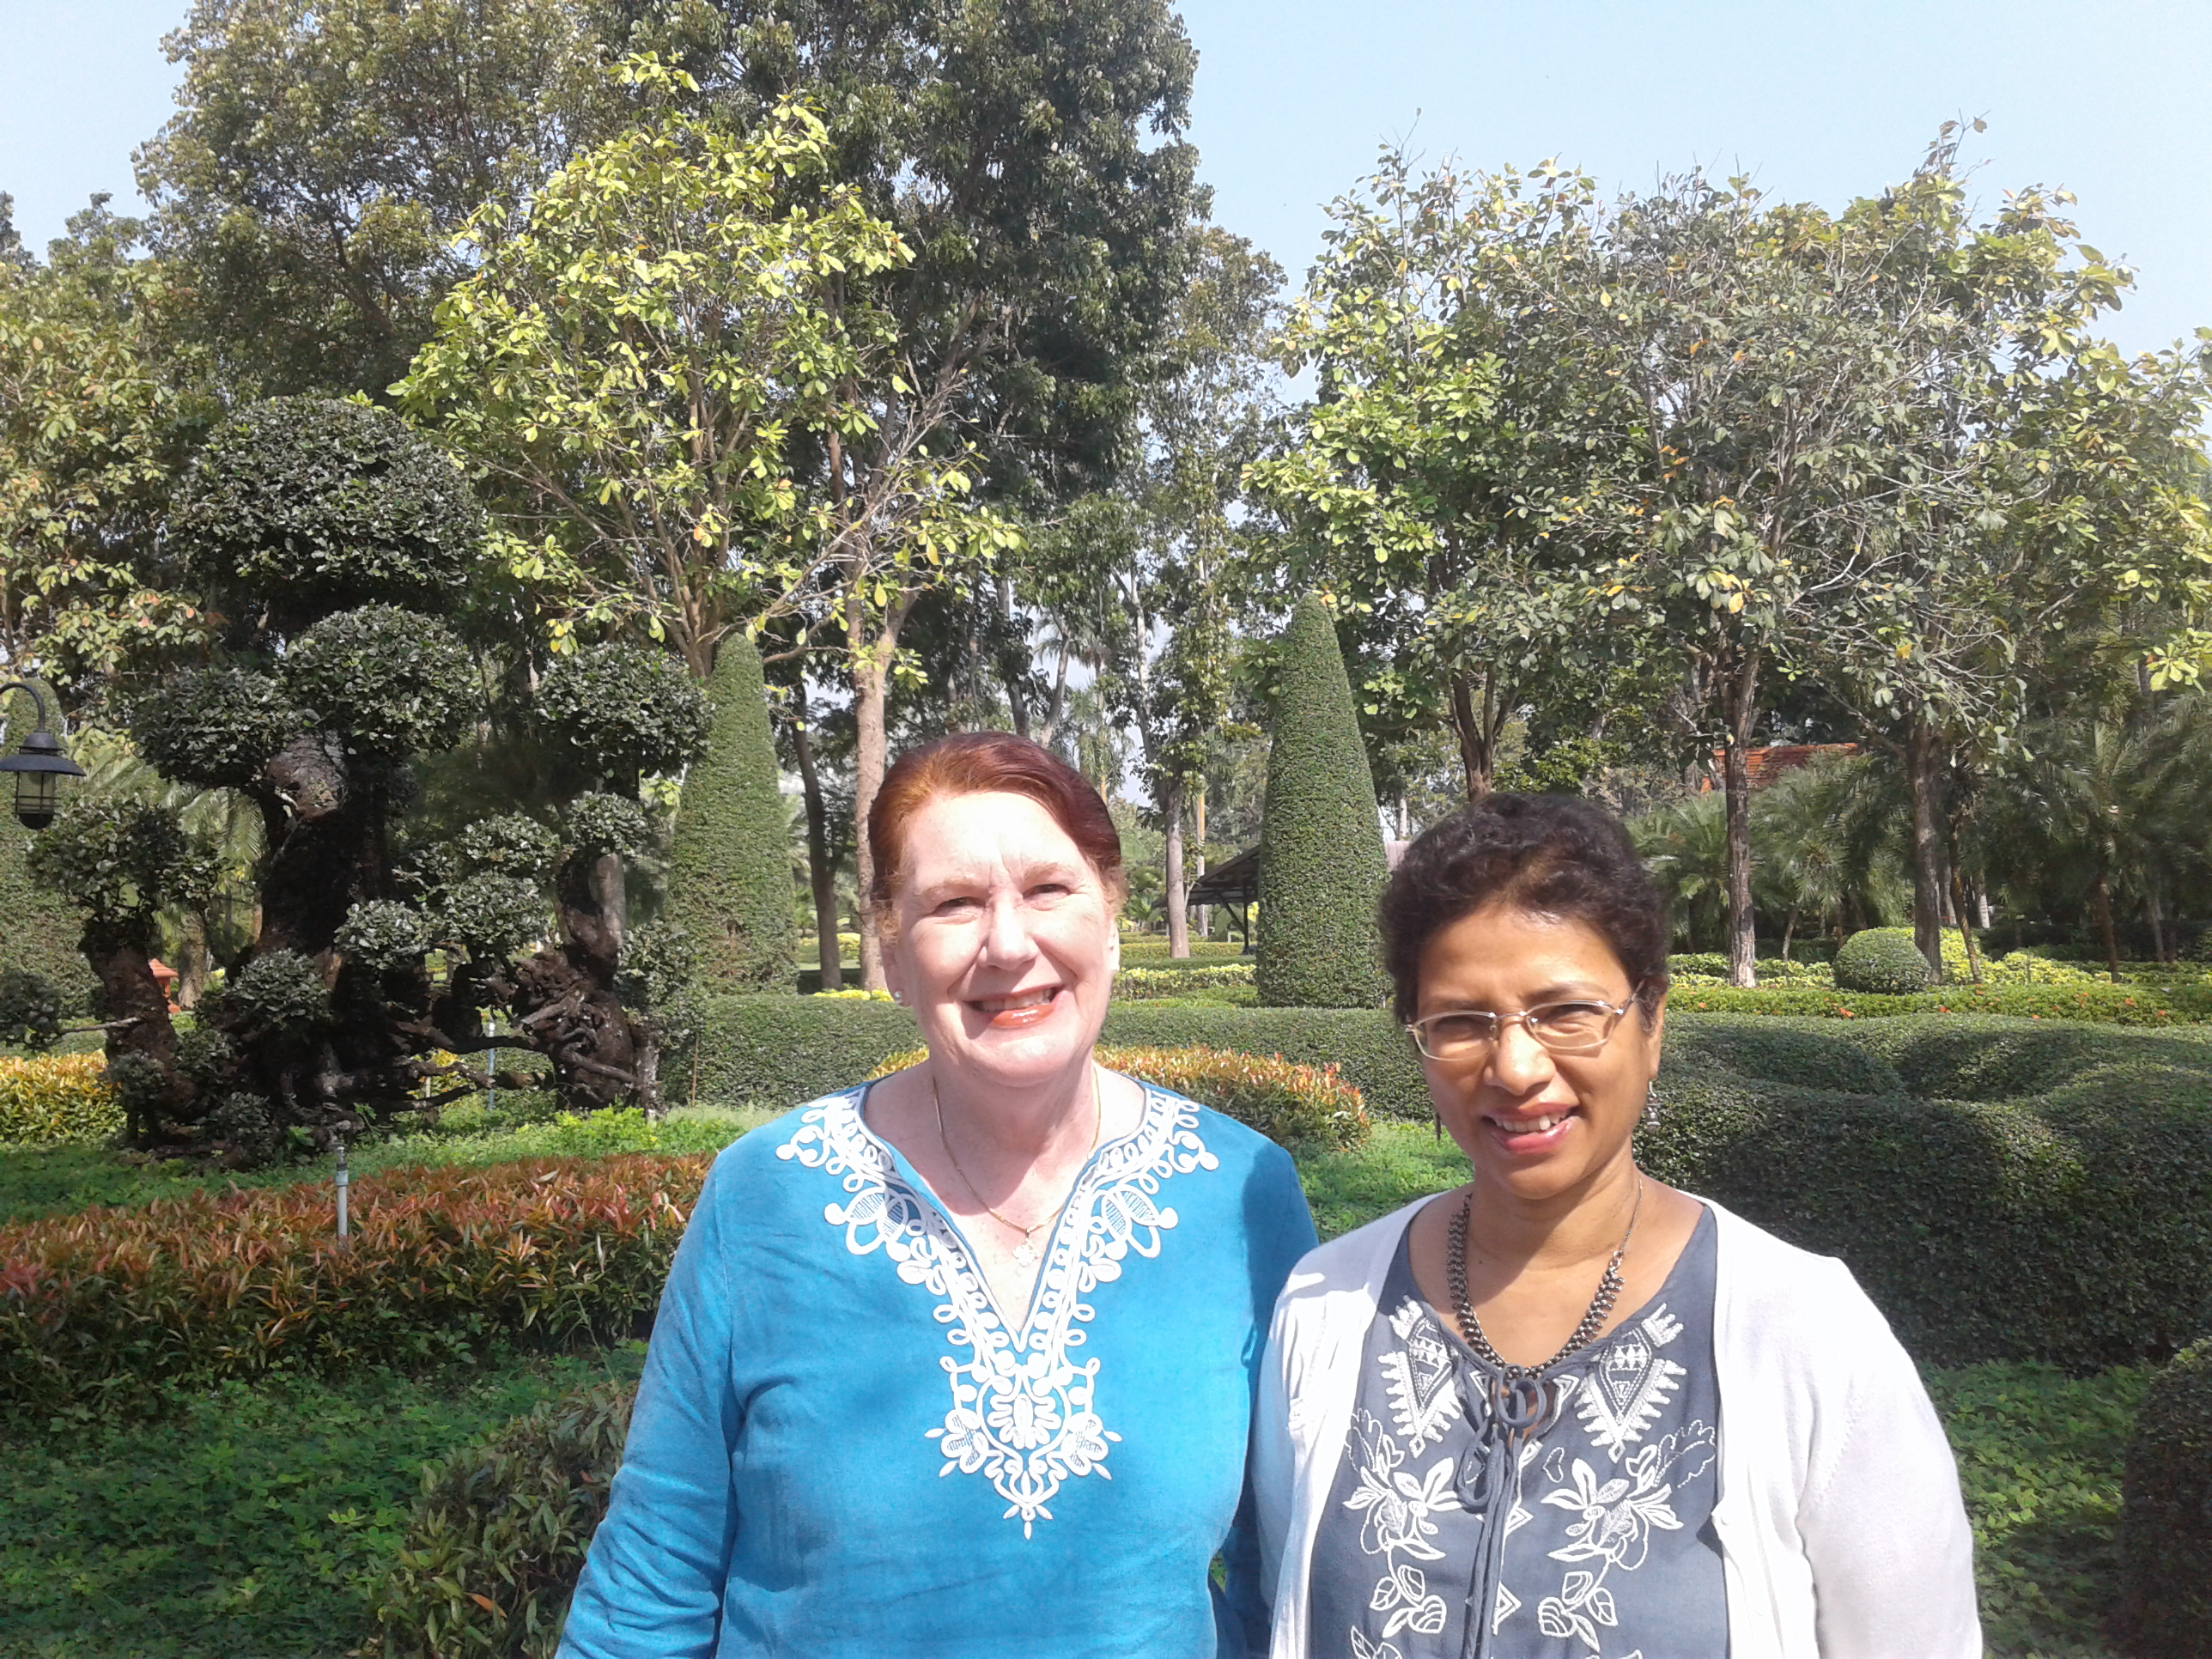 Dr. Havilah Dharamraj of SAIACS with Marlene.